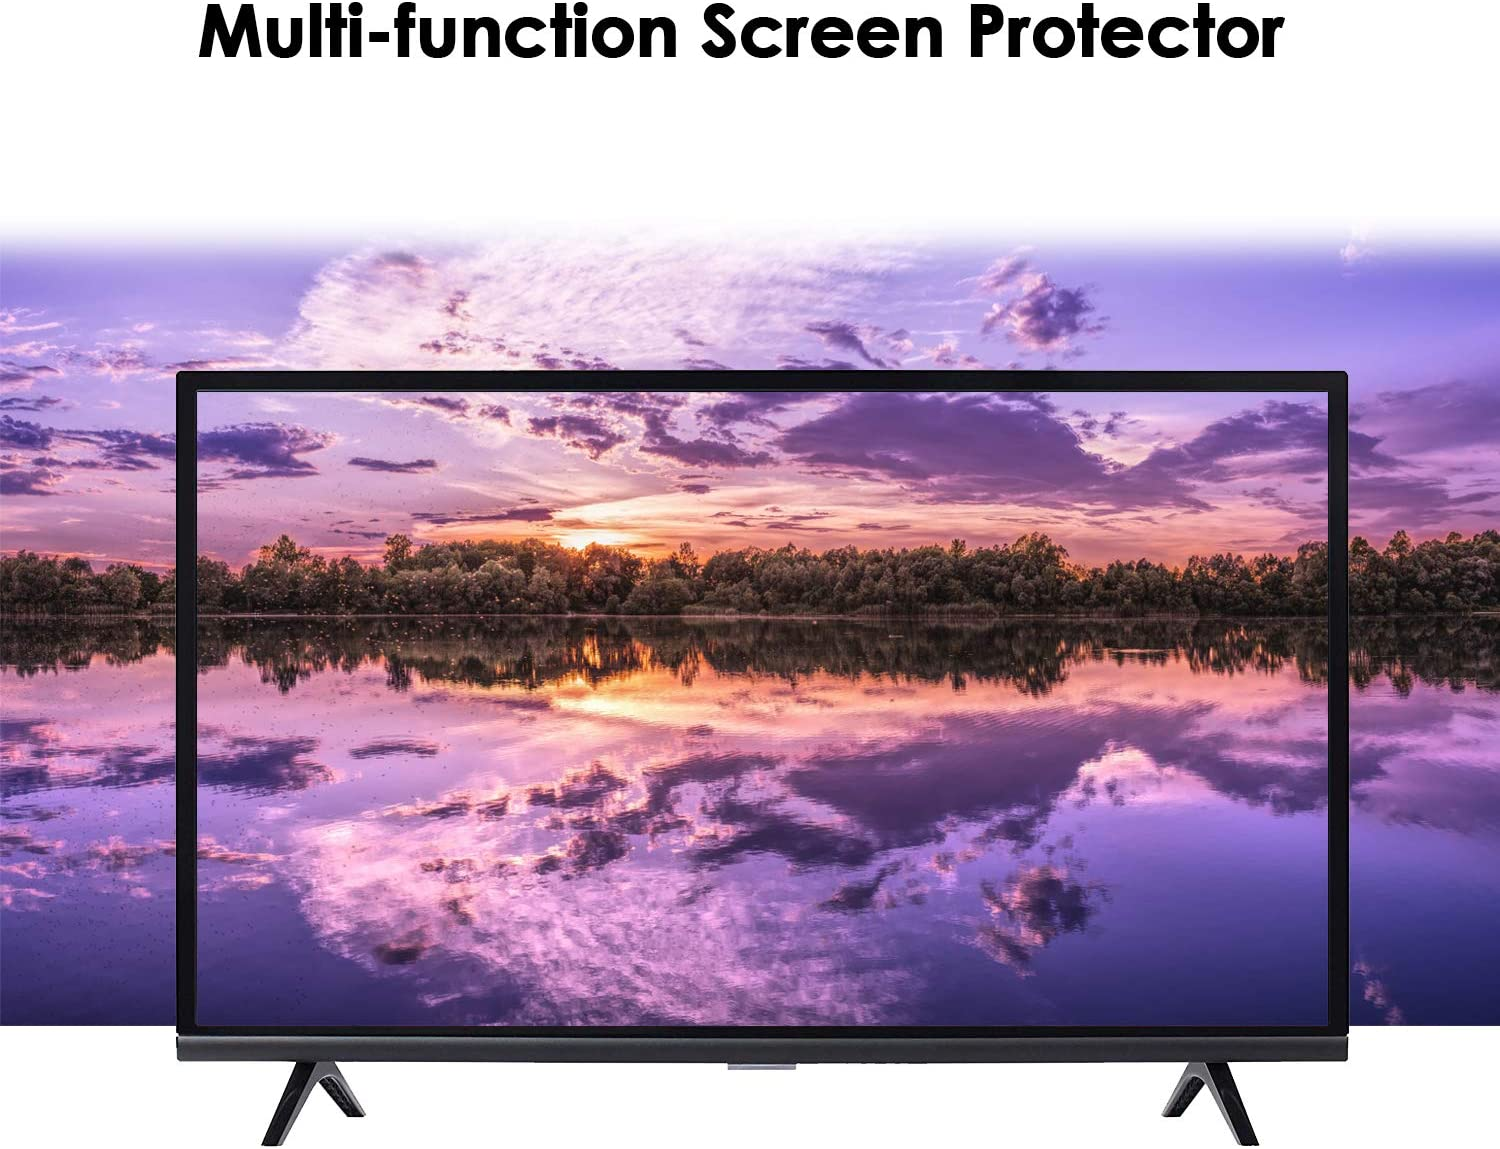 875483mm Anti Glare TV Screen Protector Blue Light TV Screen Protector Scratches and Finger Prints,40inch Anti Blue Light /& Glare Filter Film//Prevents Damage